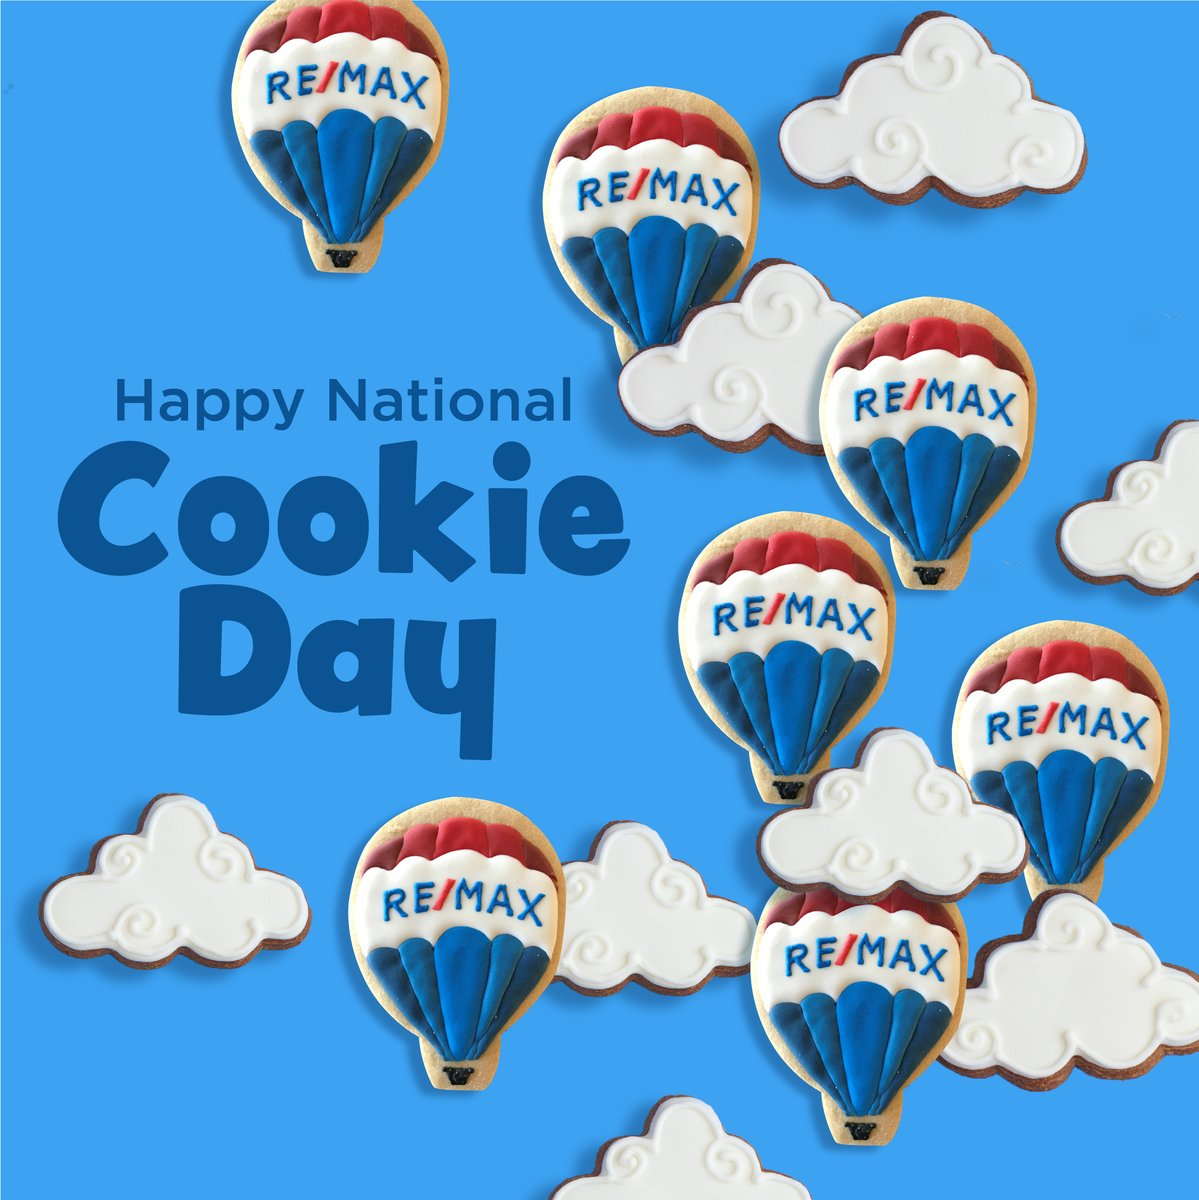 It's #nationalcookieday! Tag a friend you'd like to share a cookie with today! 😍